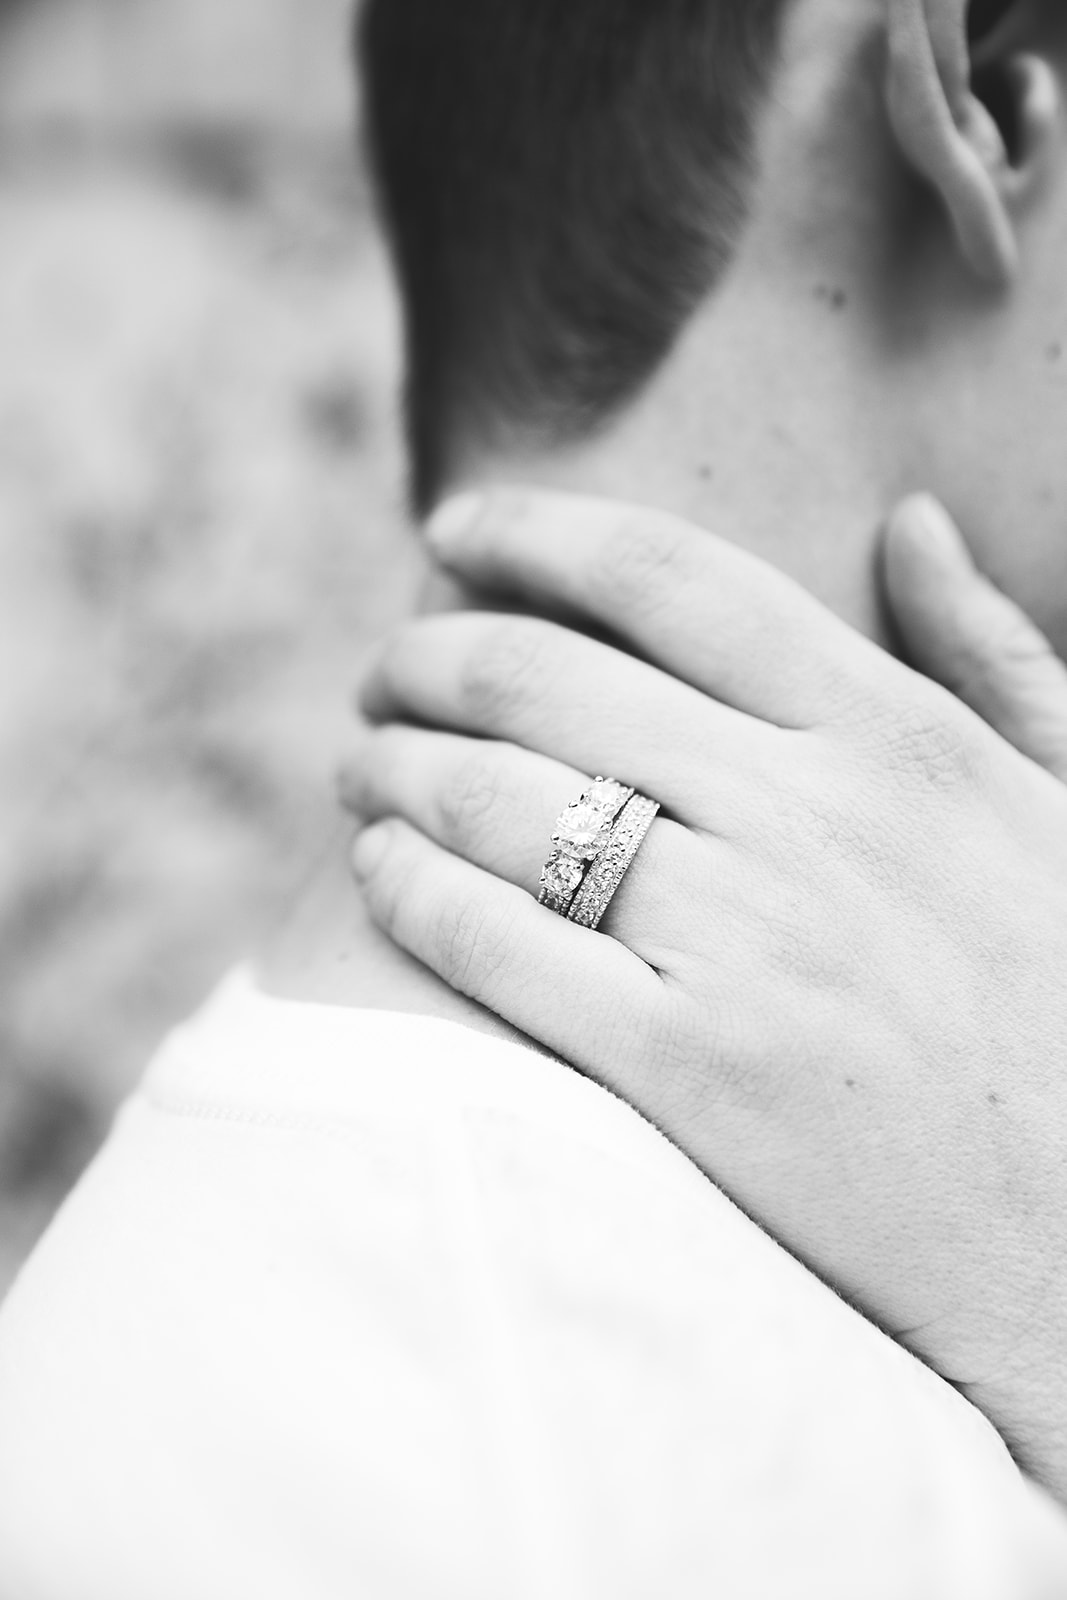 Professional engagement photography with bella alder photography black and white ring shot engagement pictures inspo picture ideas for your utah engagement session #bellaalderphoto #engagements #engagementphotographer #loganutahengagementphotographer #utahengagement #utahwedding #engagementoutfitinspo #loganutah